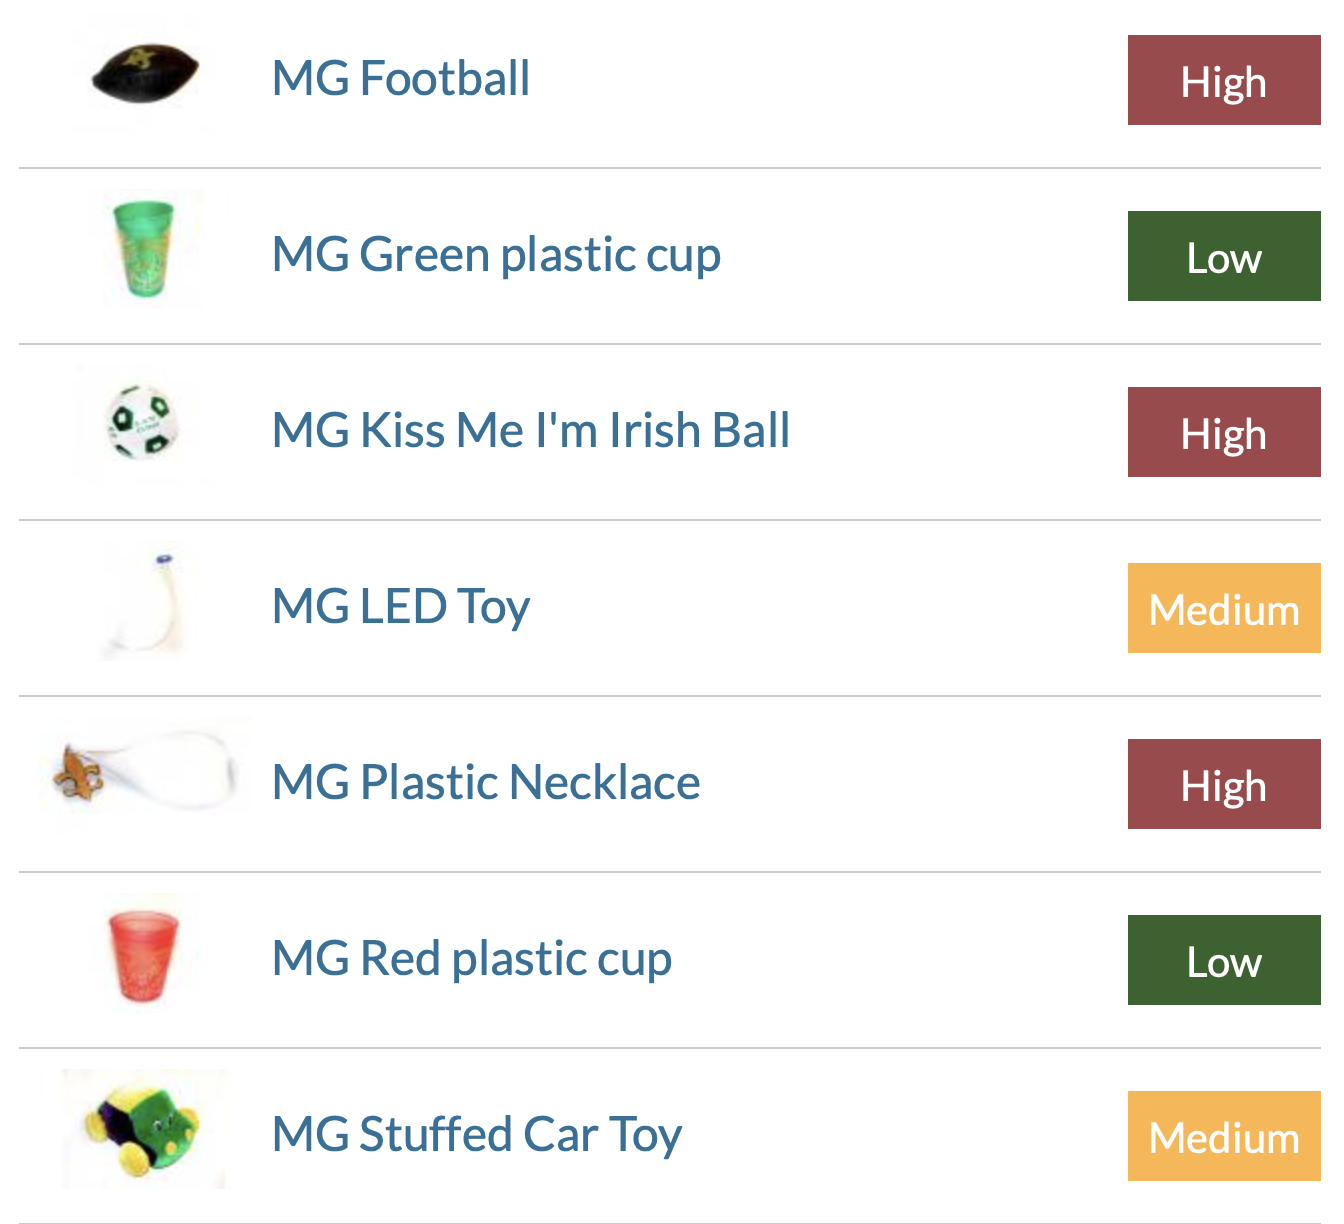 Mardi Gras Throws Report - HealthyStuff.org research finds thousands of pounds of hazardous chemicals in plastic beaded products, including beaded holiday garlands and Mardi Gras beads. Product Test Samples from 2013.